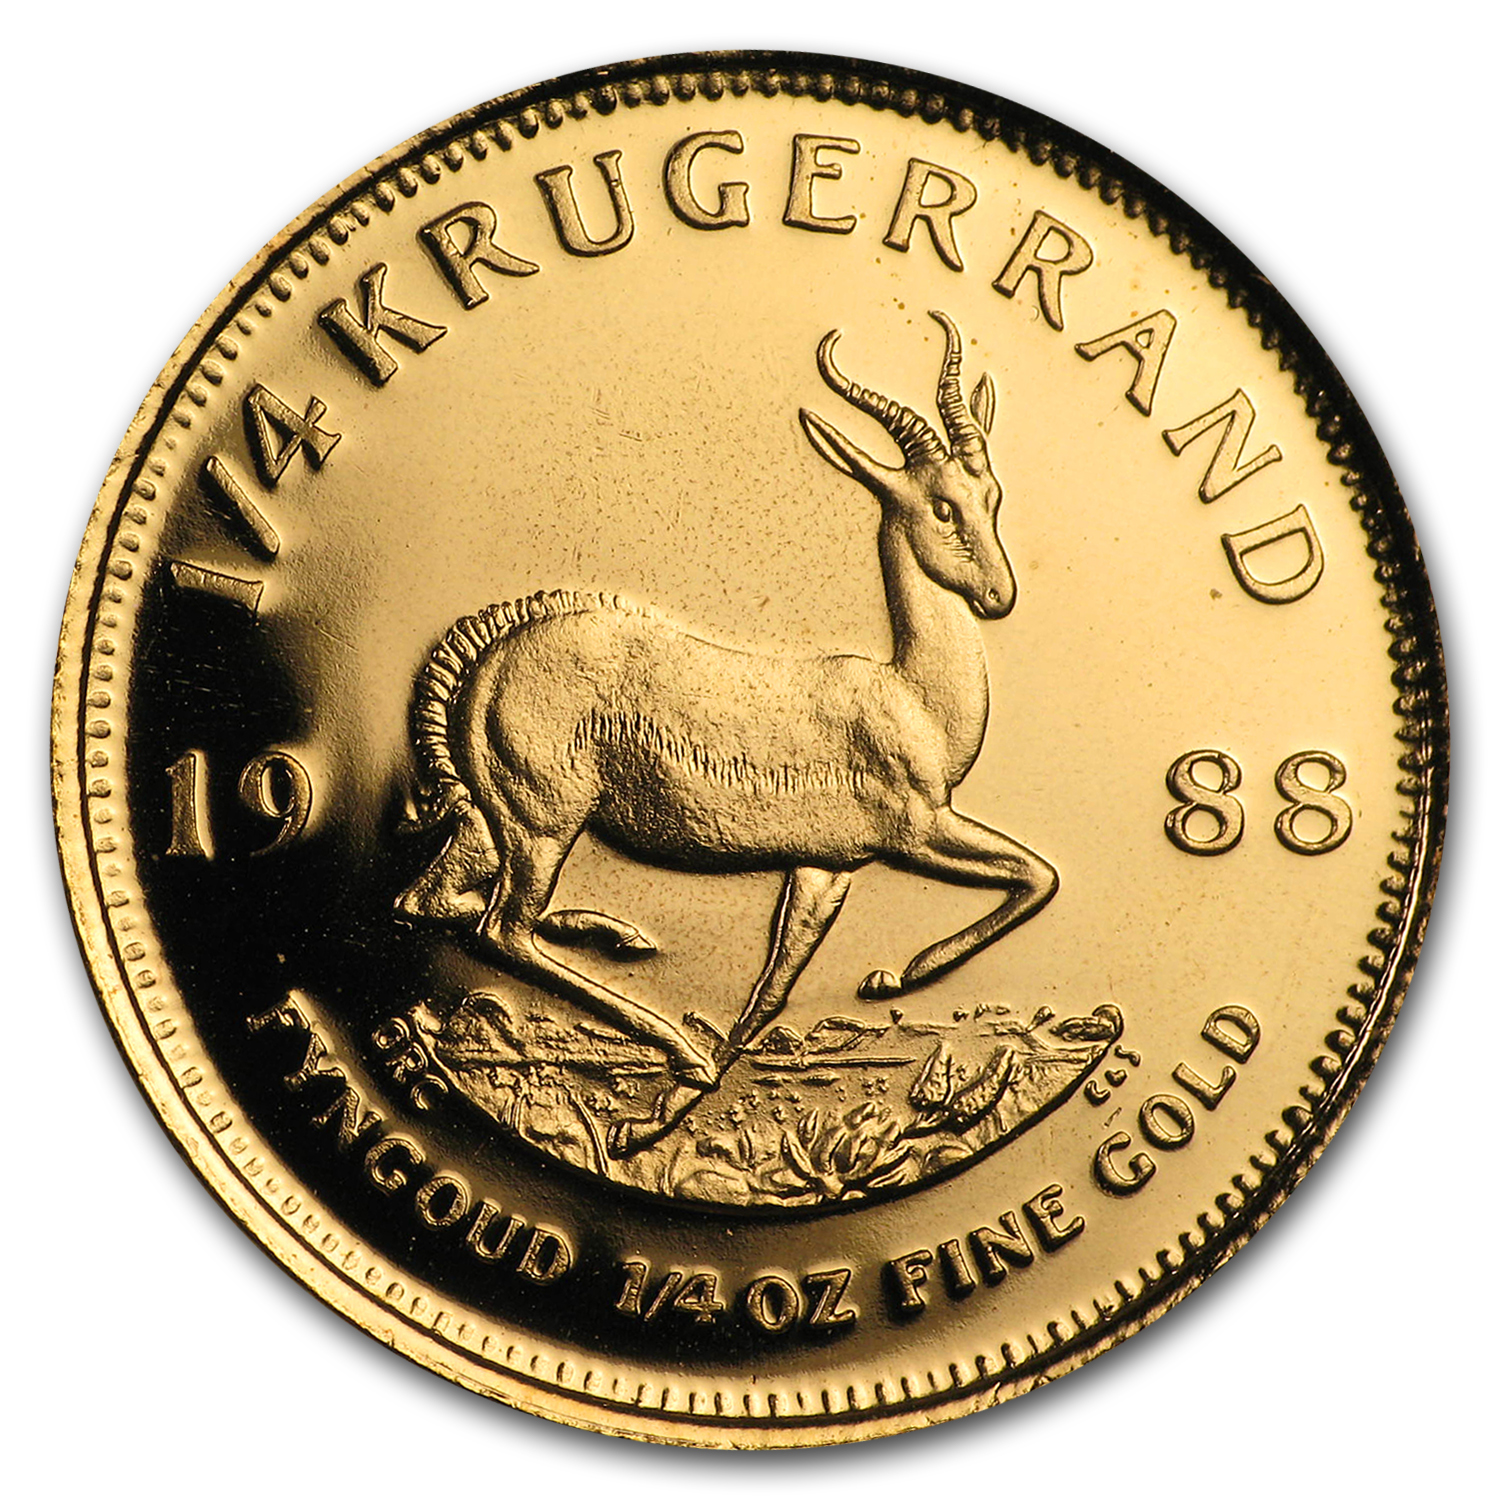 1988 South Africa 1/4 oz Proof Gold Krugerrand